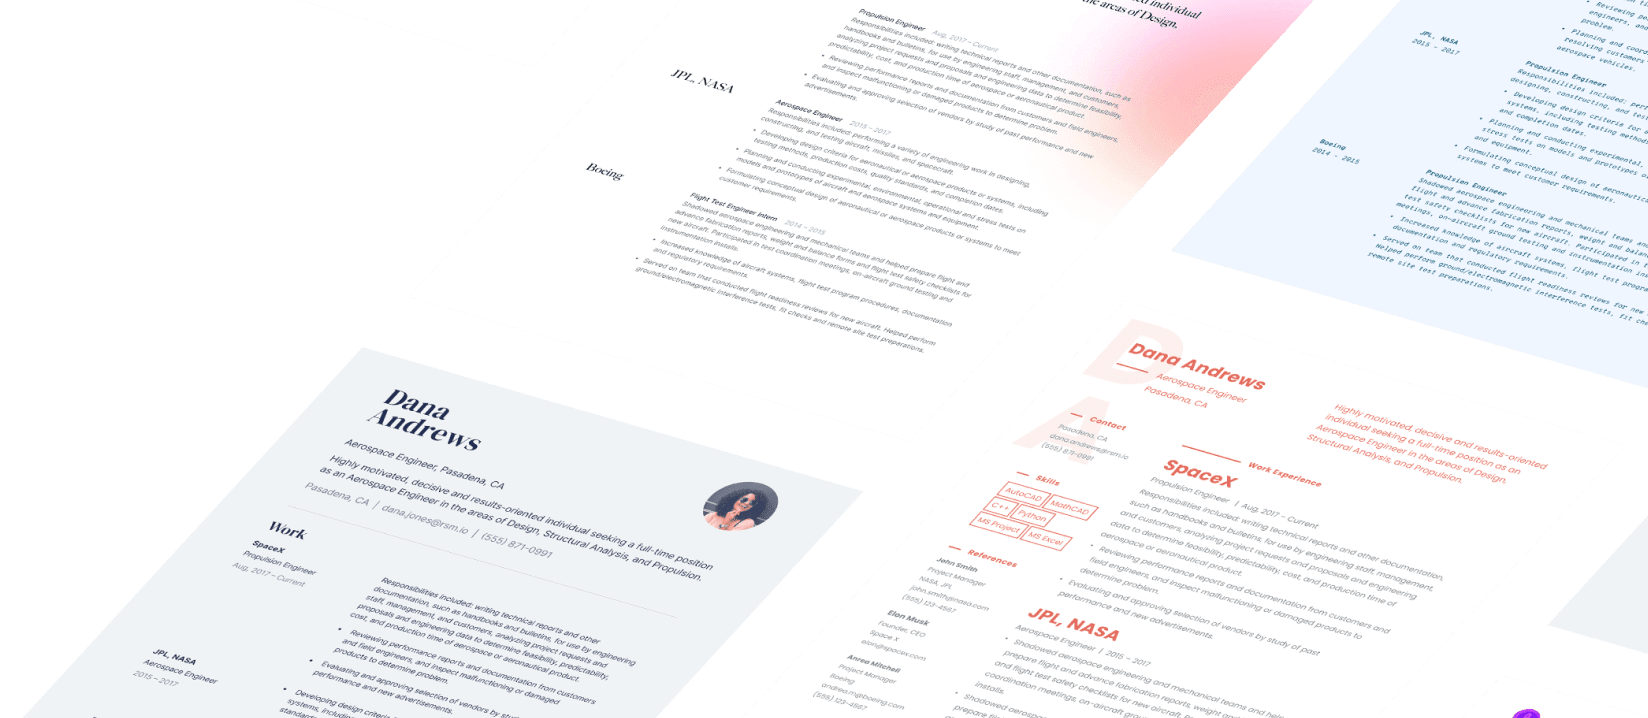 Resumes built using Standard Resume templates